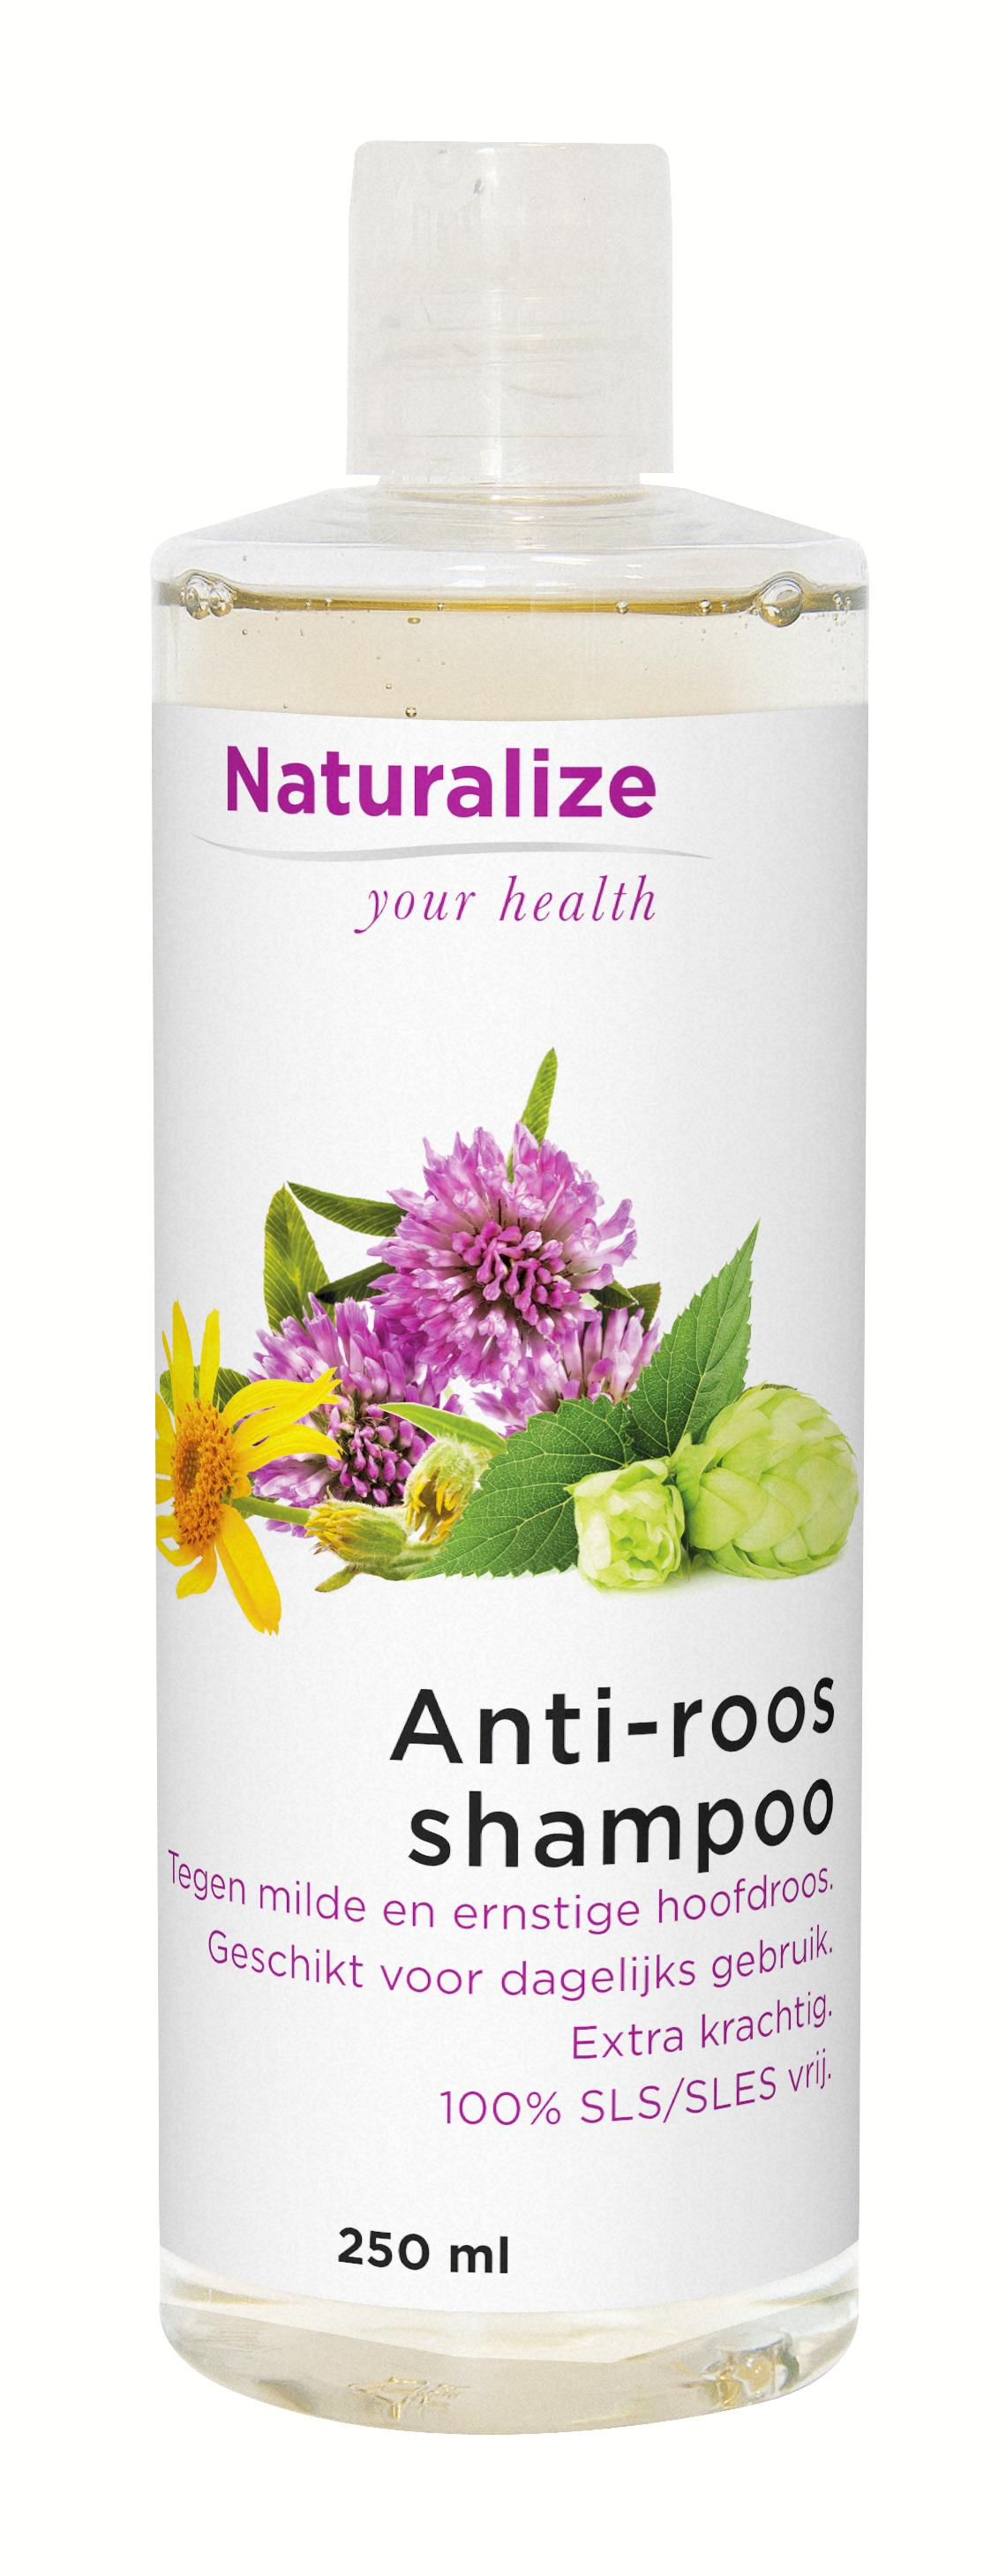 Naturalize Anti-roos shampoo (250 milliliter)